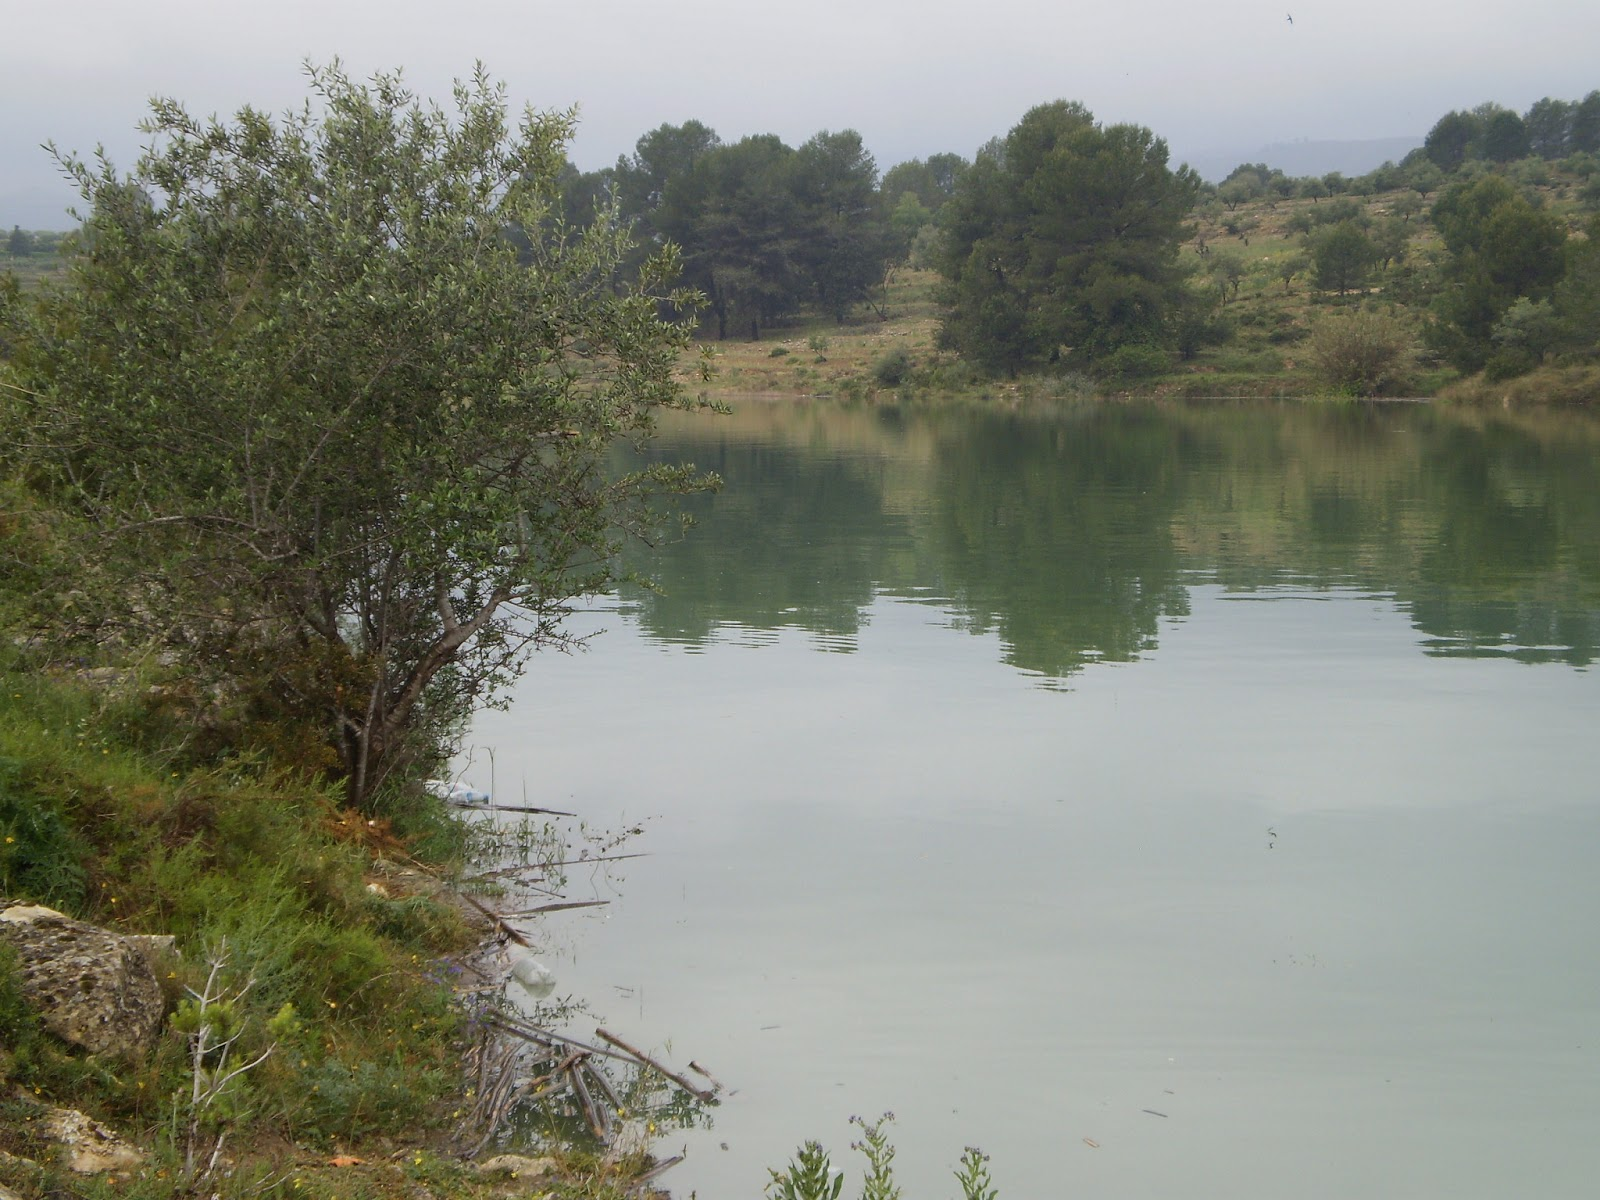 Embalse de Bellús